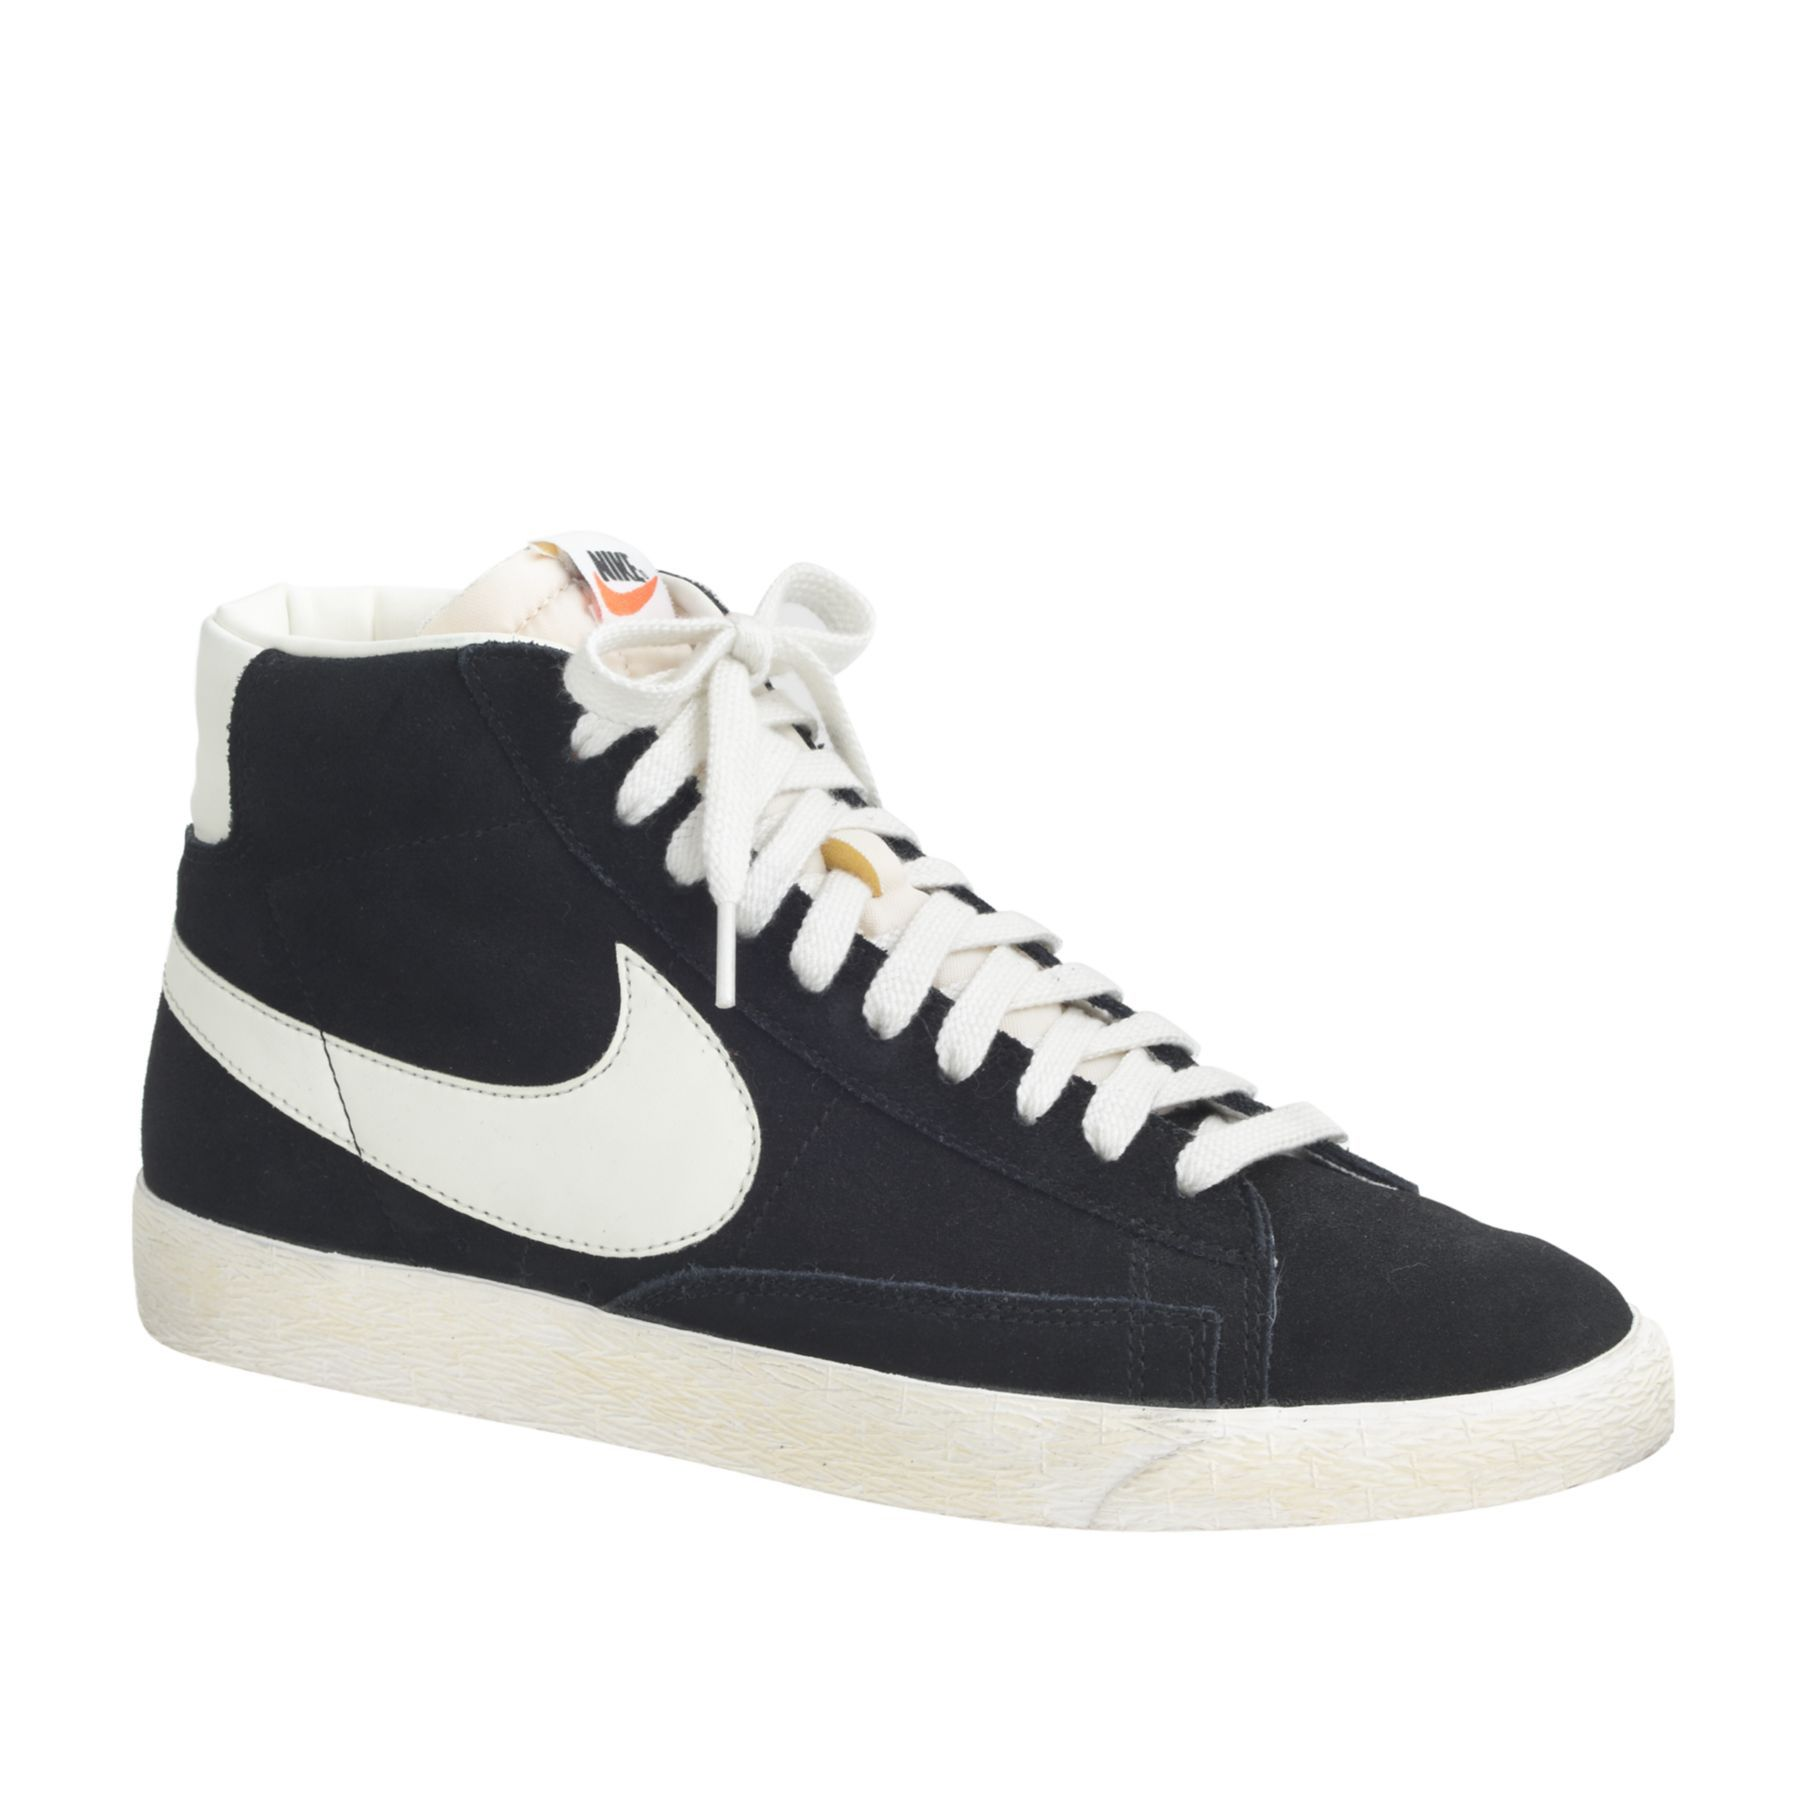 quality design 6726d 07524 Men s Nike Blazer high suede vintage sneakers in black sail at J.Crew.